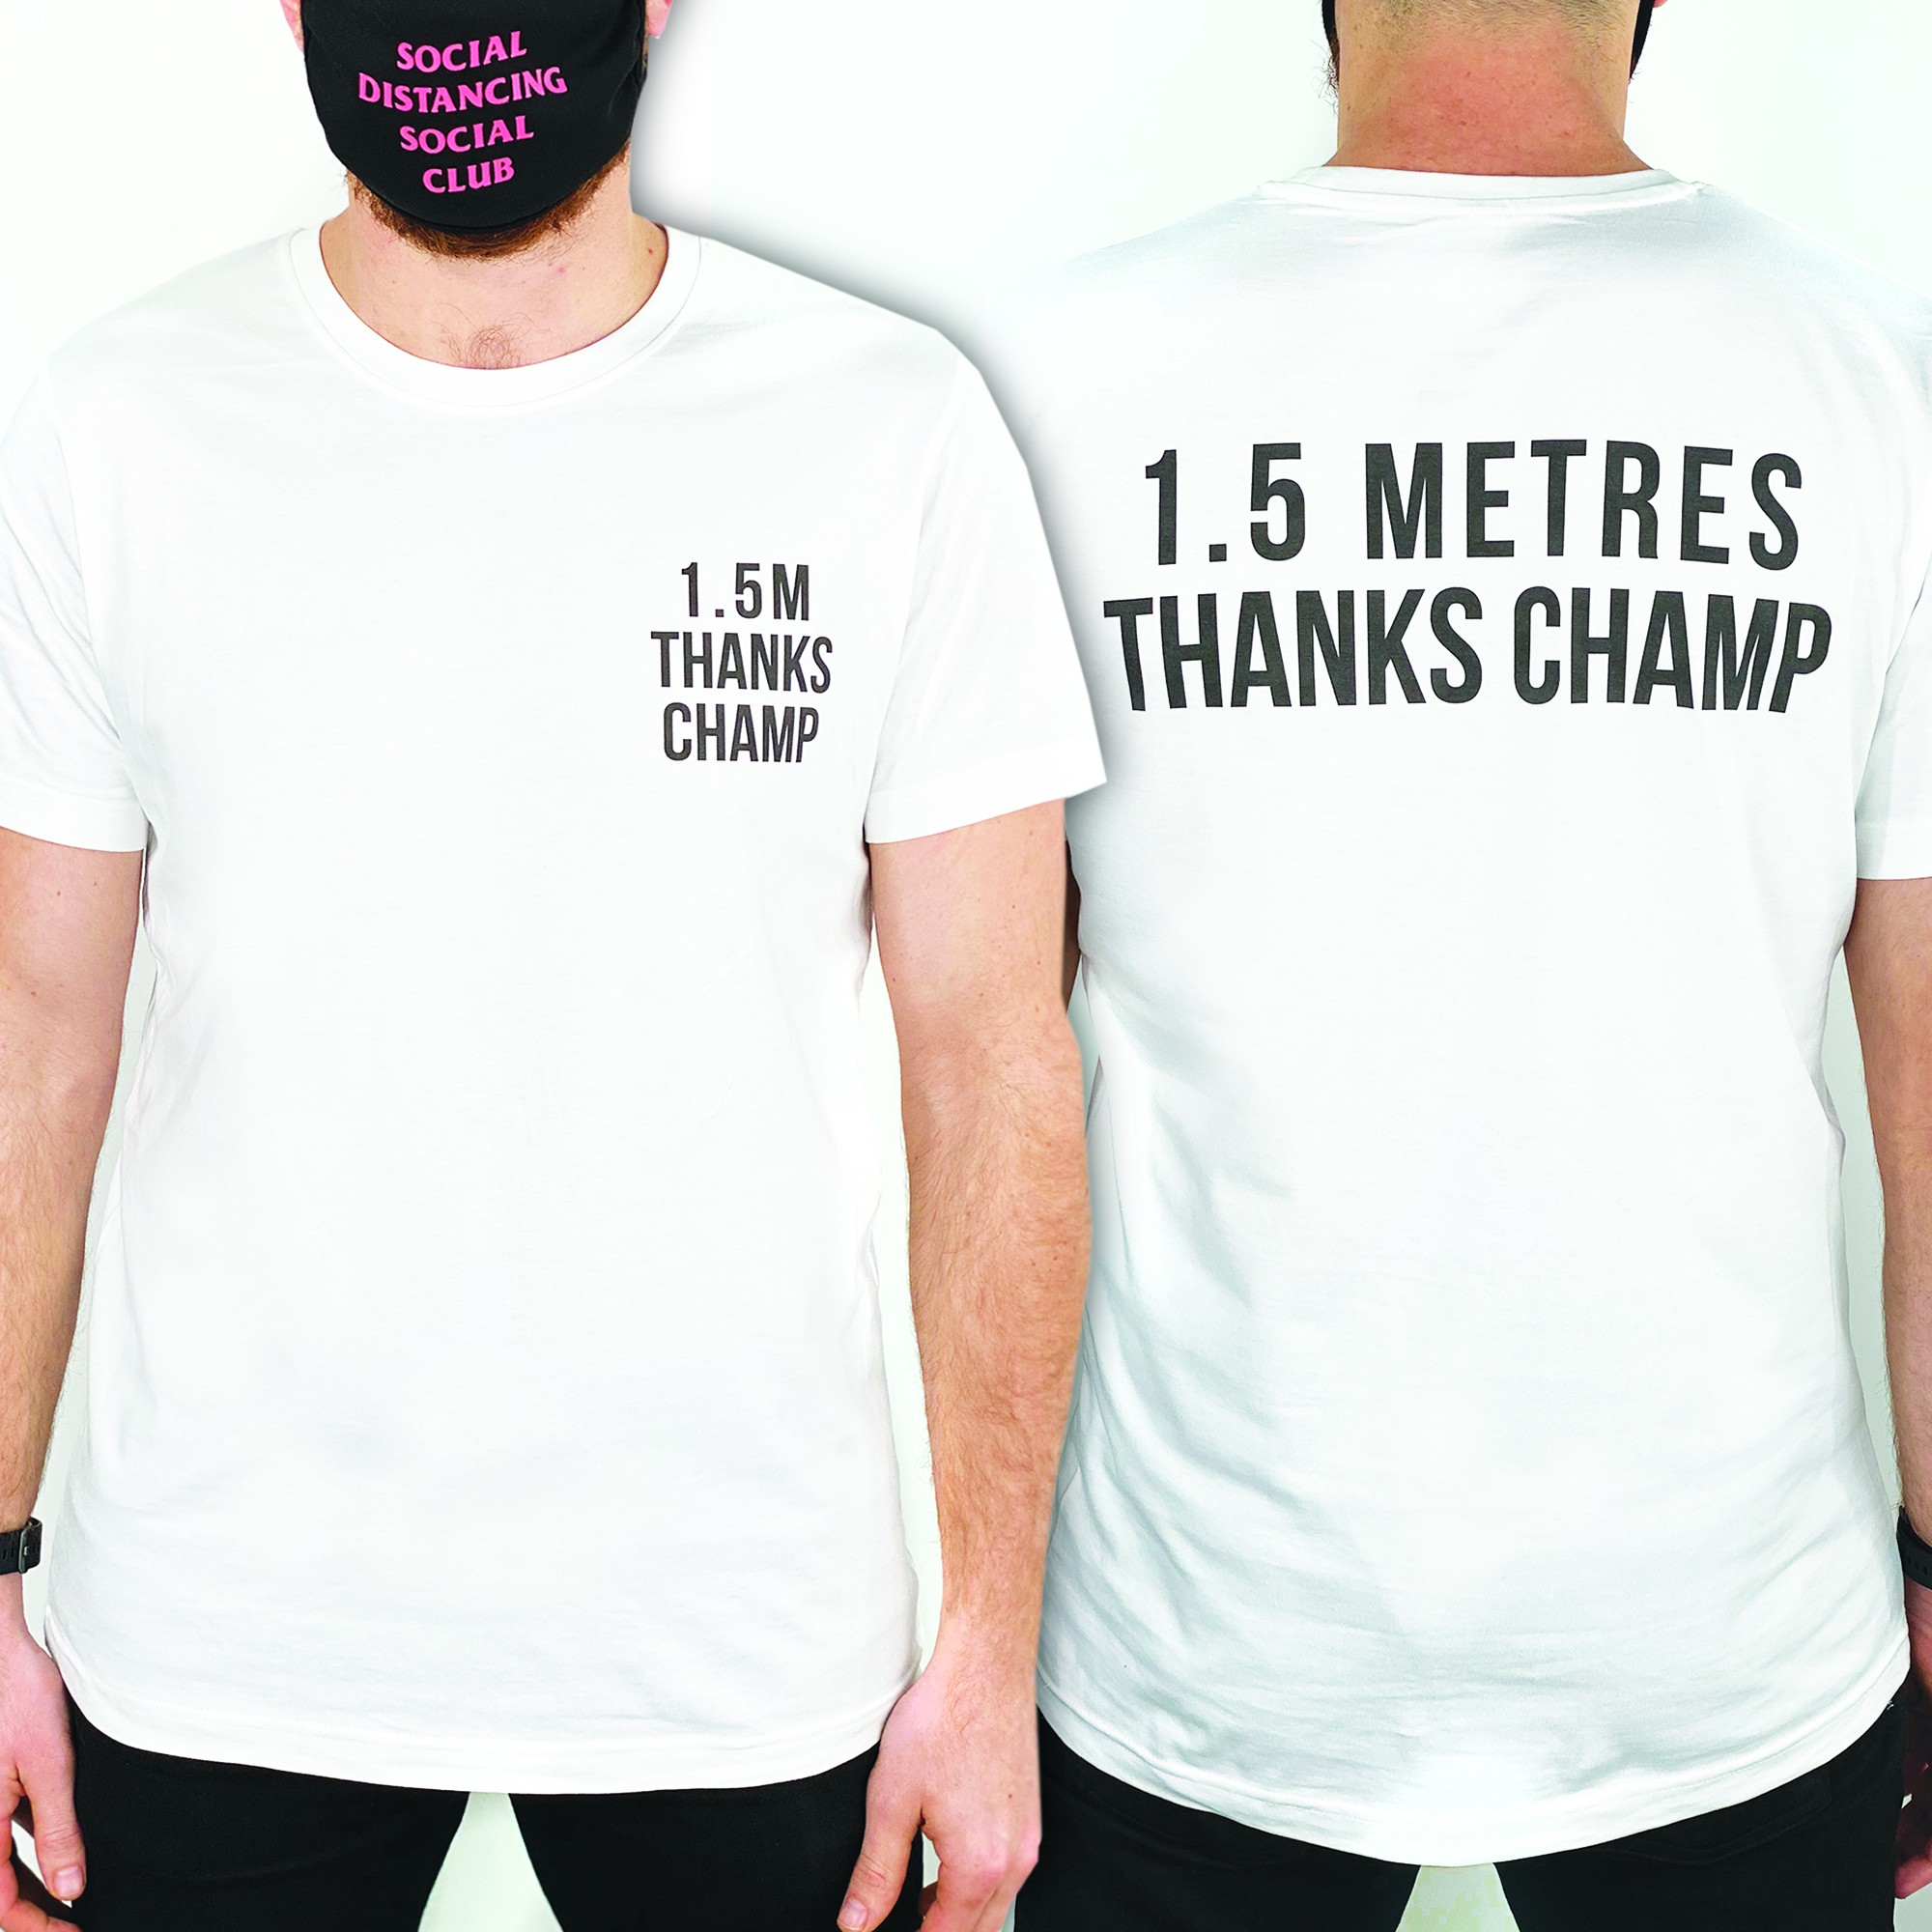 THANKS CHAMP FRONT AND BACK WHITE TEE